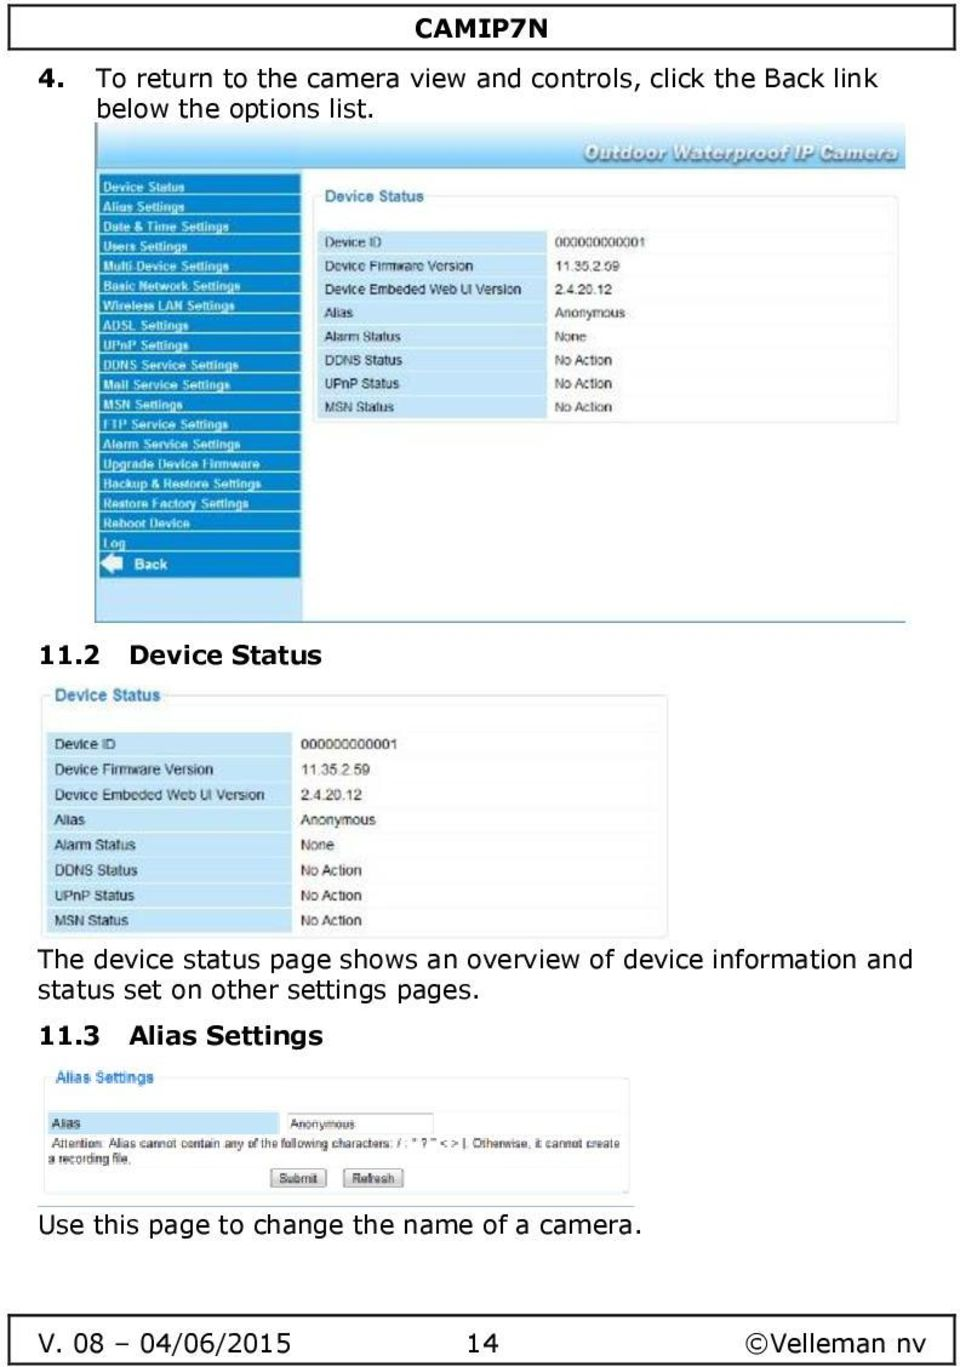 2 Device Status The device status page shows an overview of device